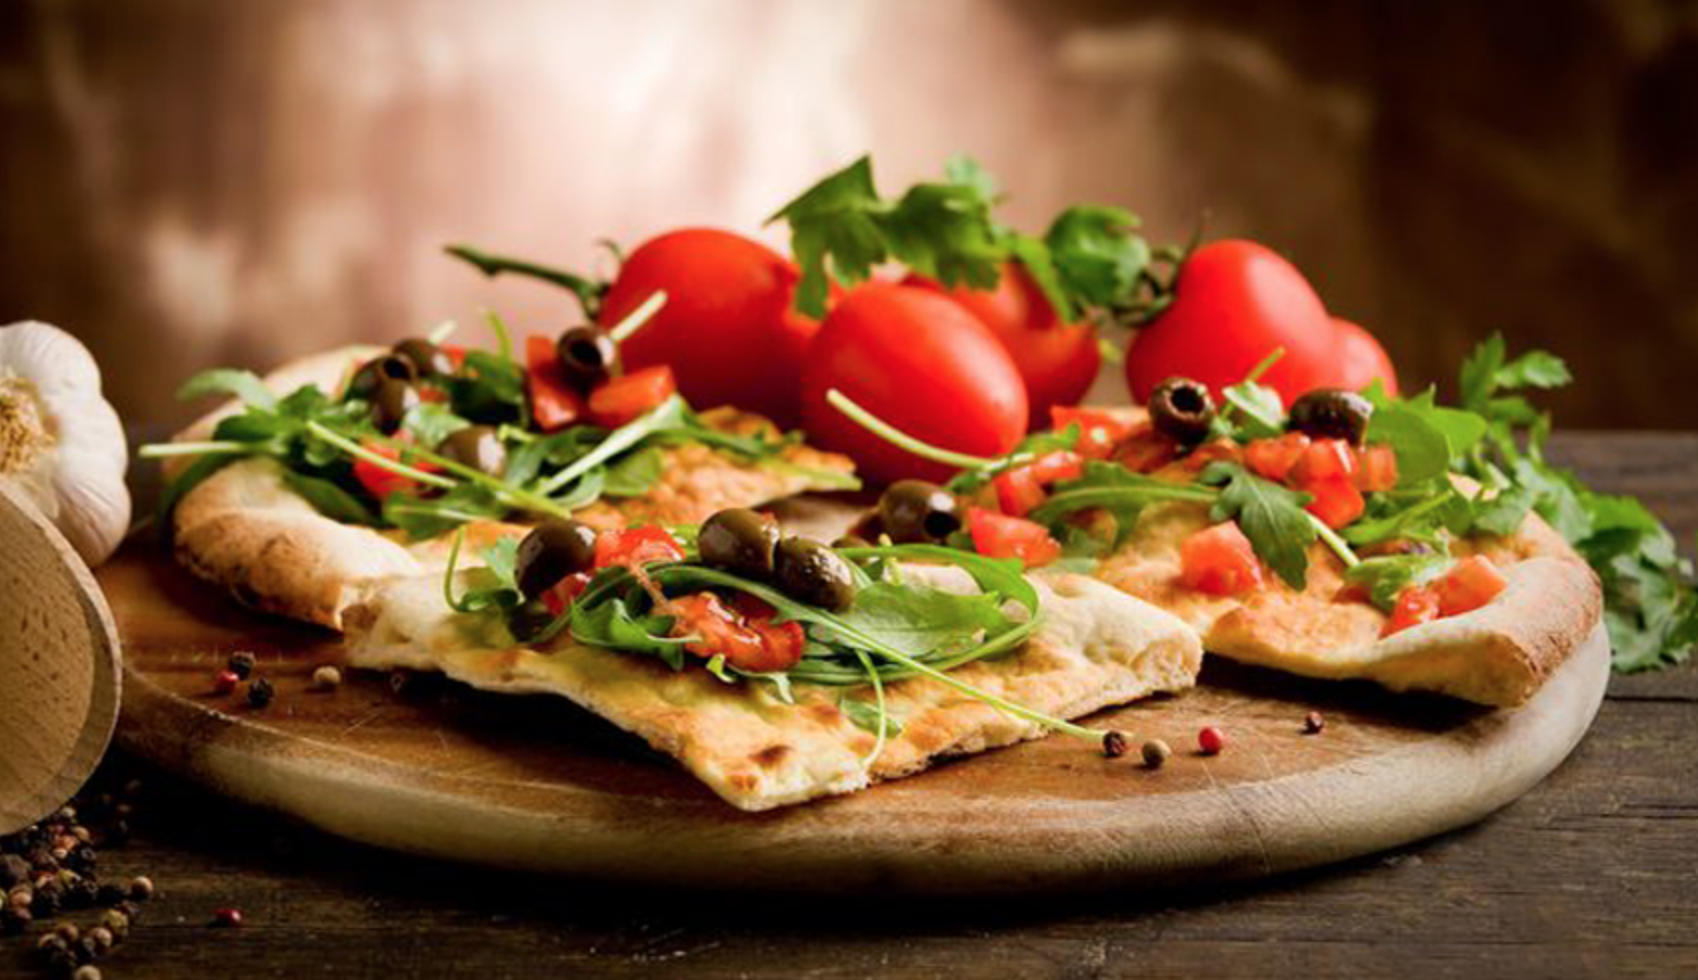 Pizza-making Lunch – 11 Aug